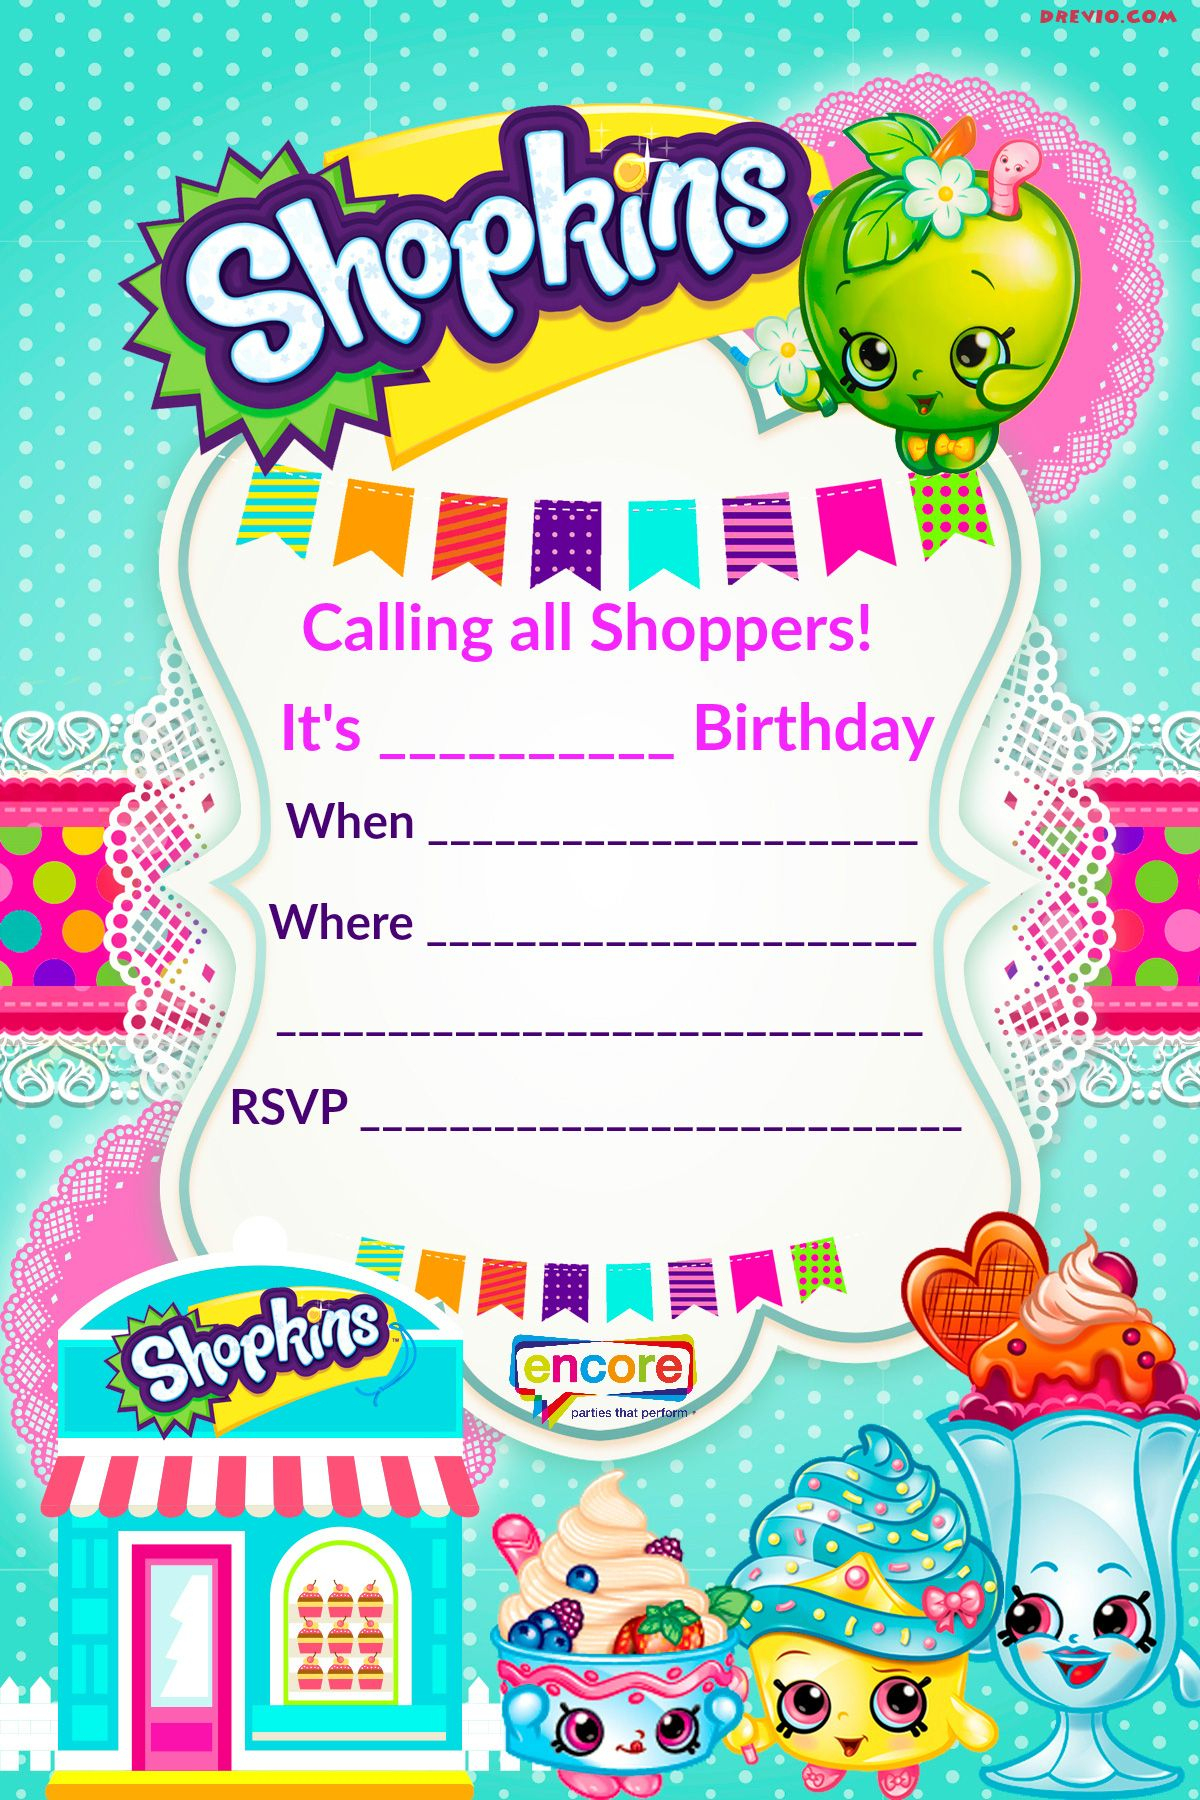 Updated – Free Printable Shopkins Birthday Invitation Template - Free Printable Shopkins Birthday Invitations